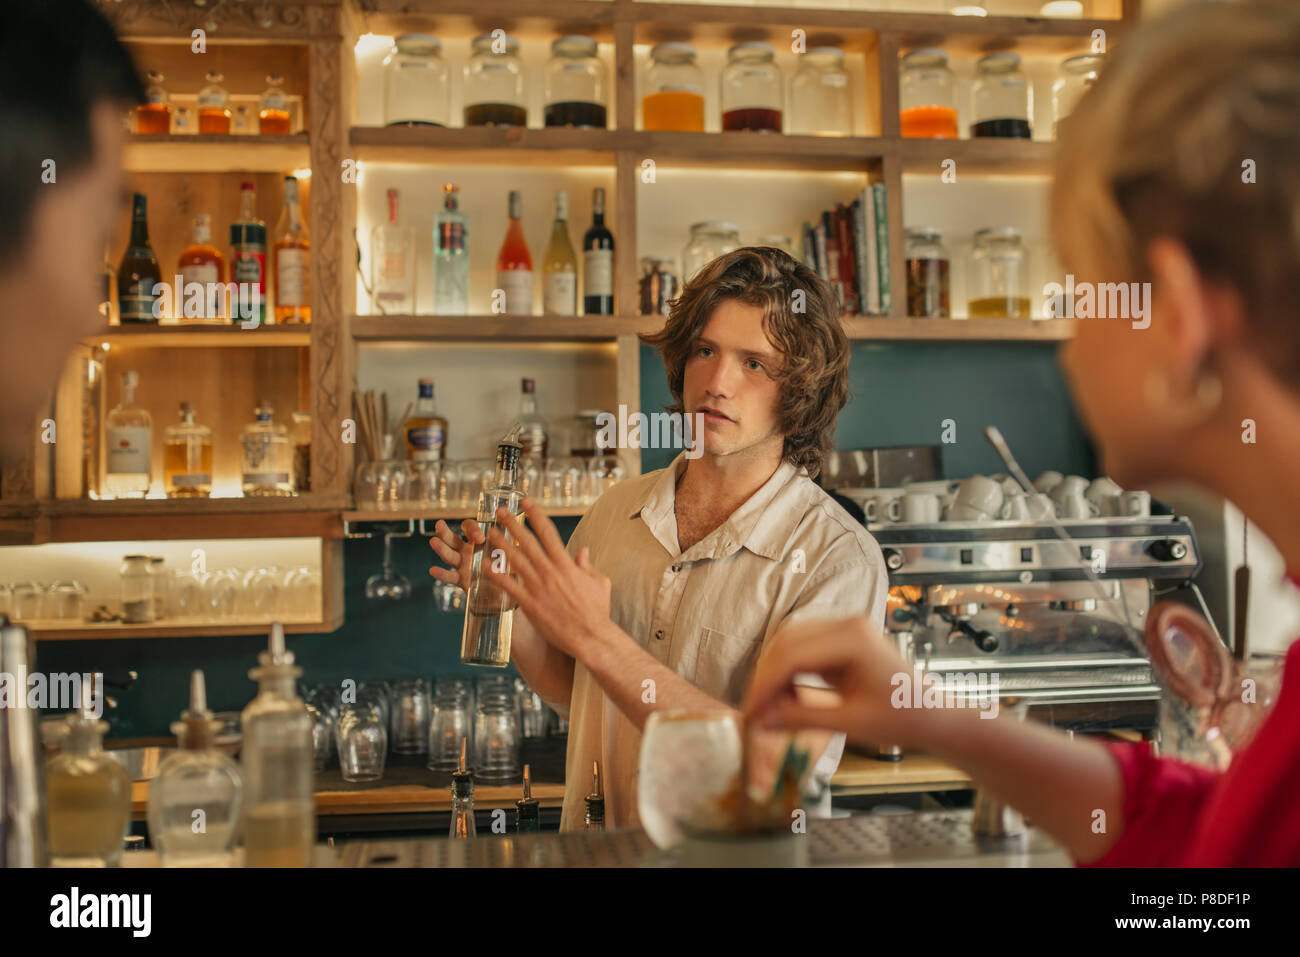 Bartender taking drink orders from customers in a trendy bar - Stock Image